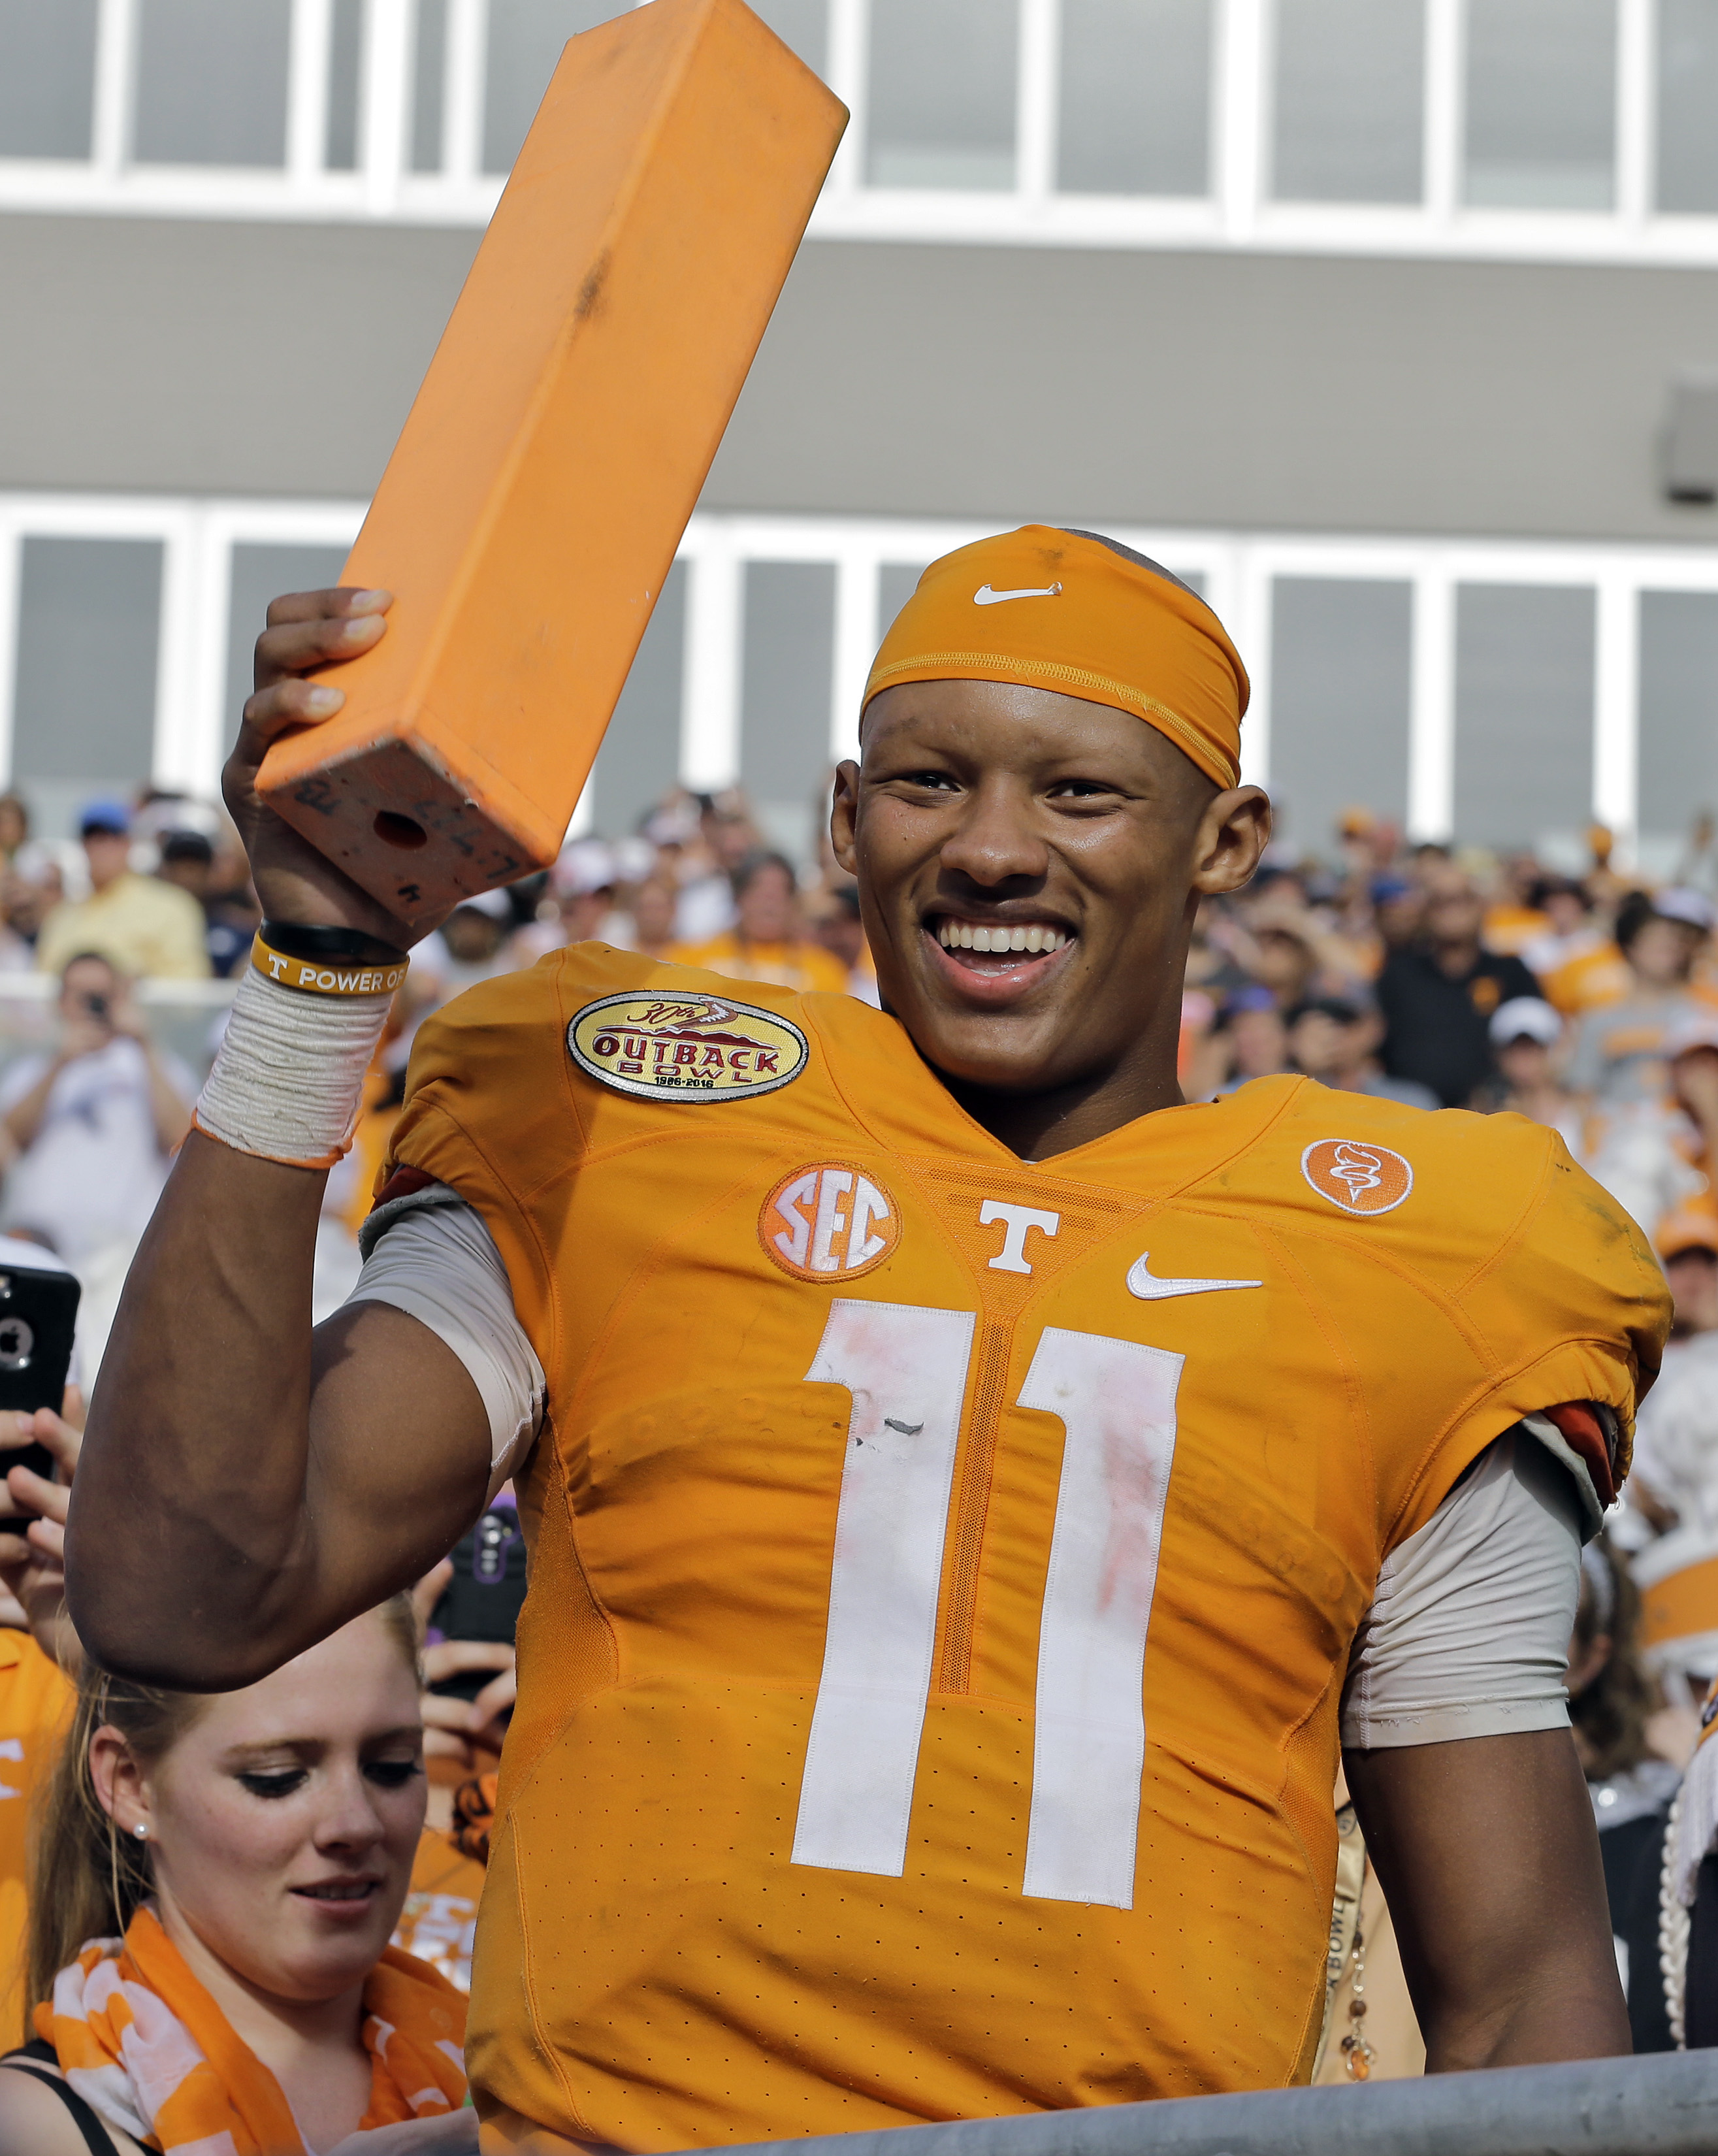 Tennessee quarterback Joshua Dobbs smiles as he holds a pylon after their 45-6 win over Northwestern in the Outback Bowl NCAA college football game Friday, Jan. 1, 2016, in Tampa, Fla. (AP Photo/Chris O'Meara)